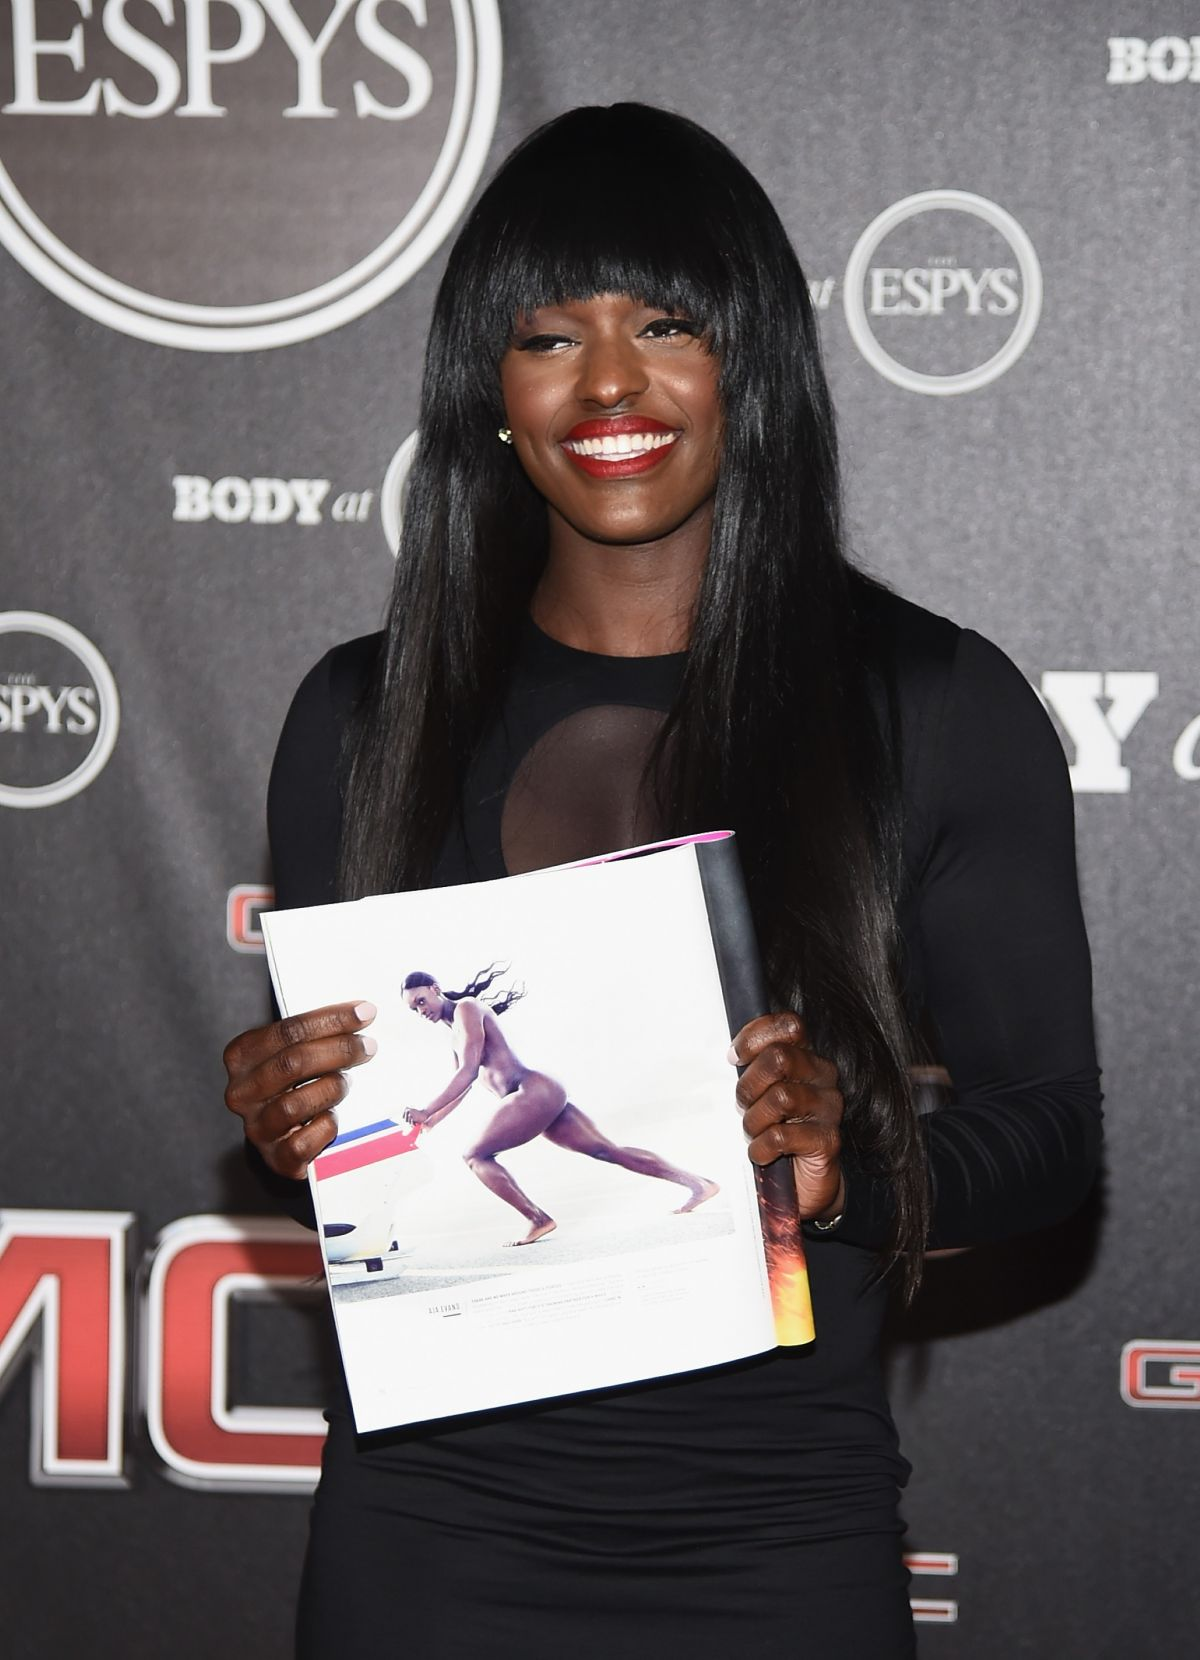 AJA EVANS at ESPN Presents Body at ESPYS